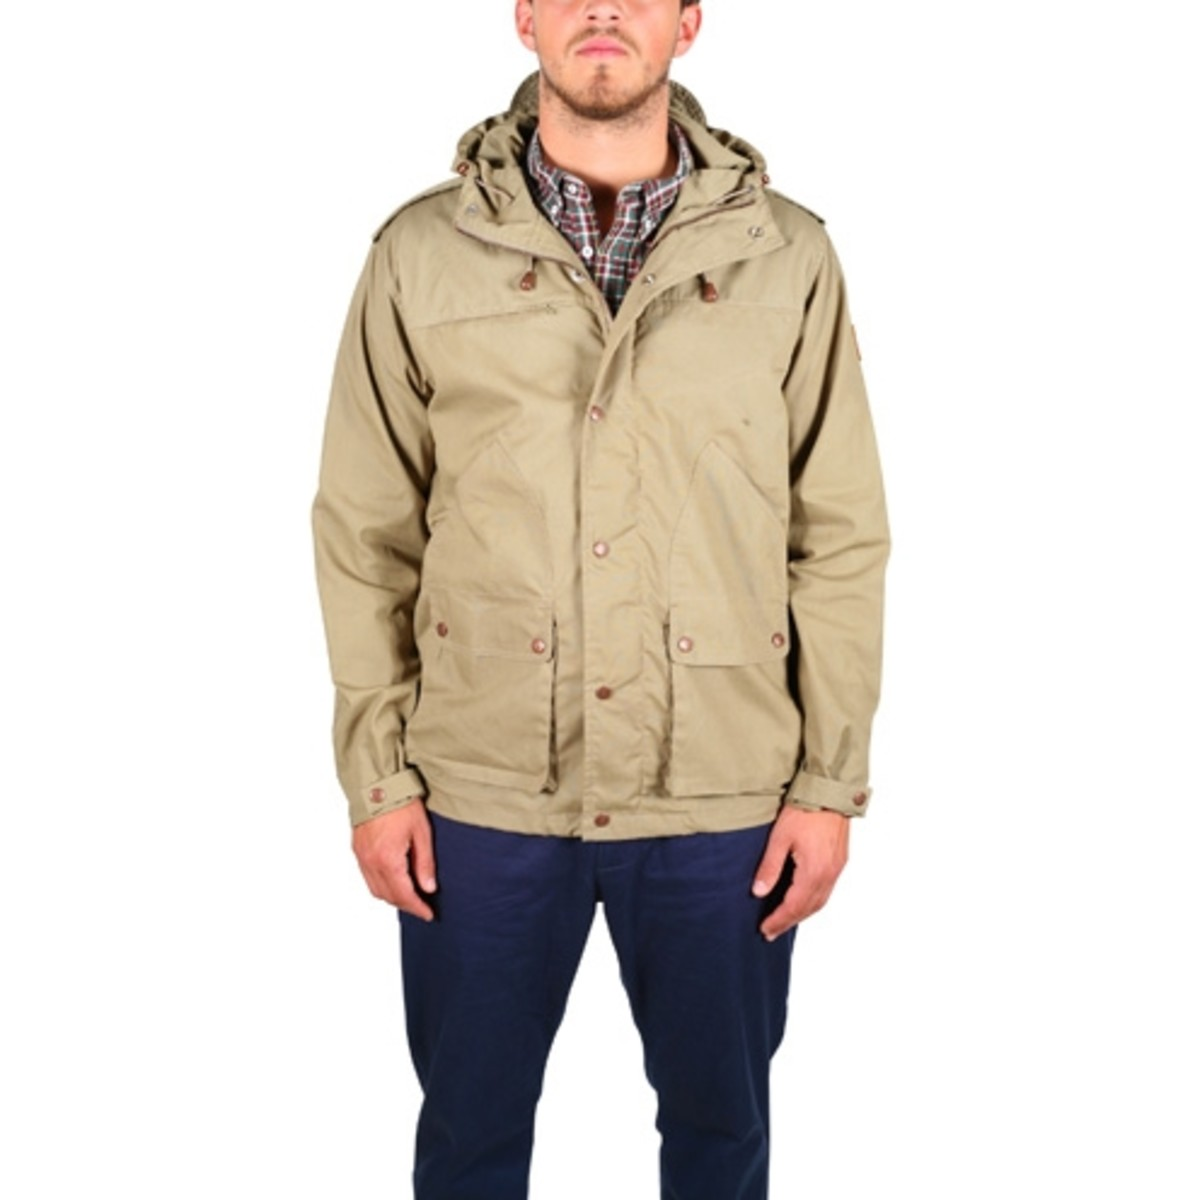 Penfield SS2011 Jackets 33